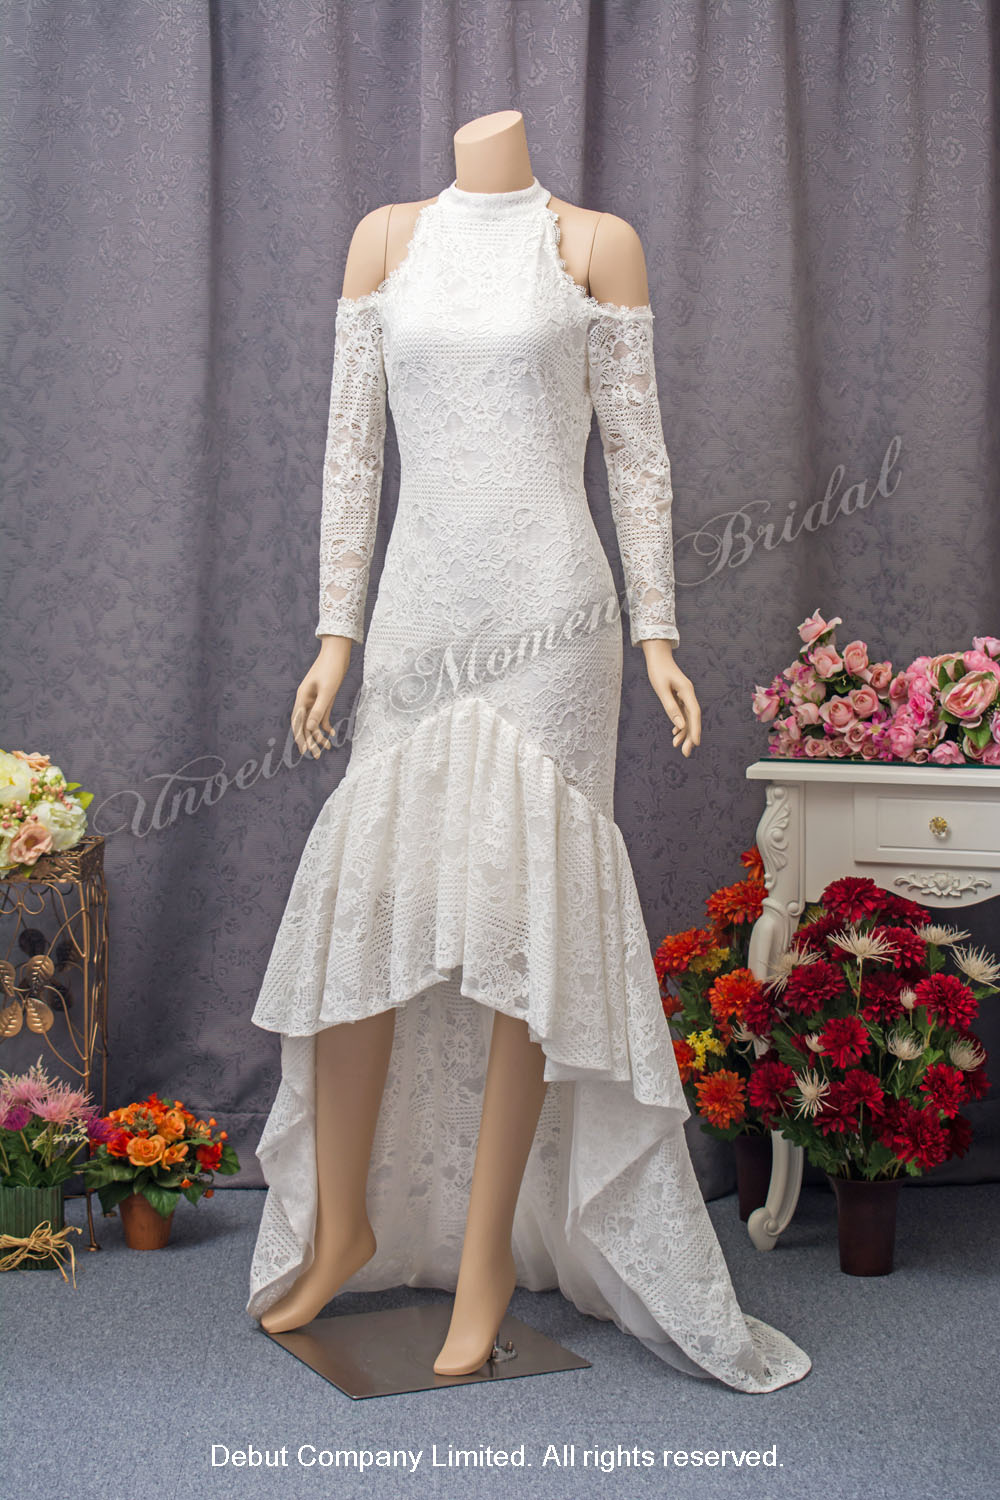 Round neckline, long sleeves, lace care-free wedding dress with court-train. 長袖, 露膊, 圓領, 前短後長, 蕾絲輕婚紗